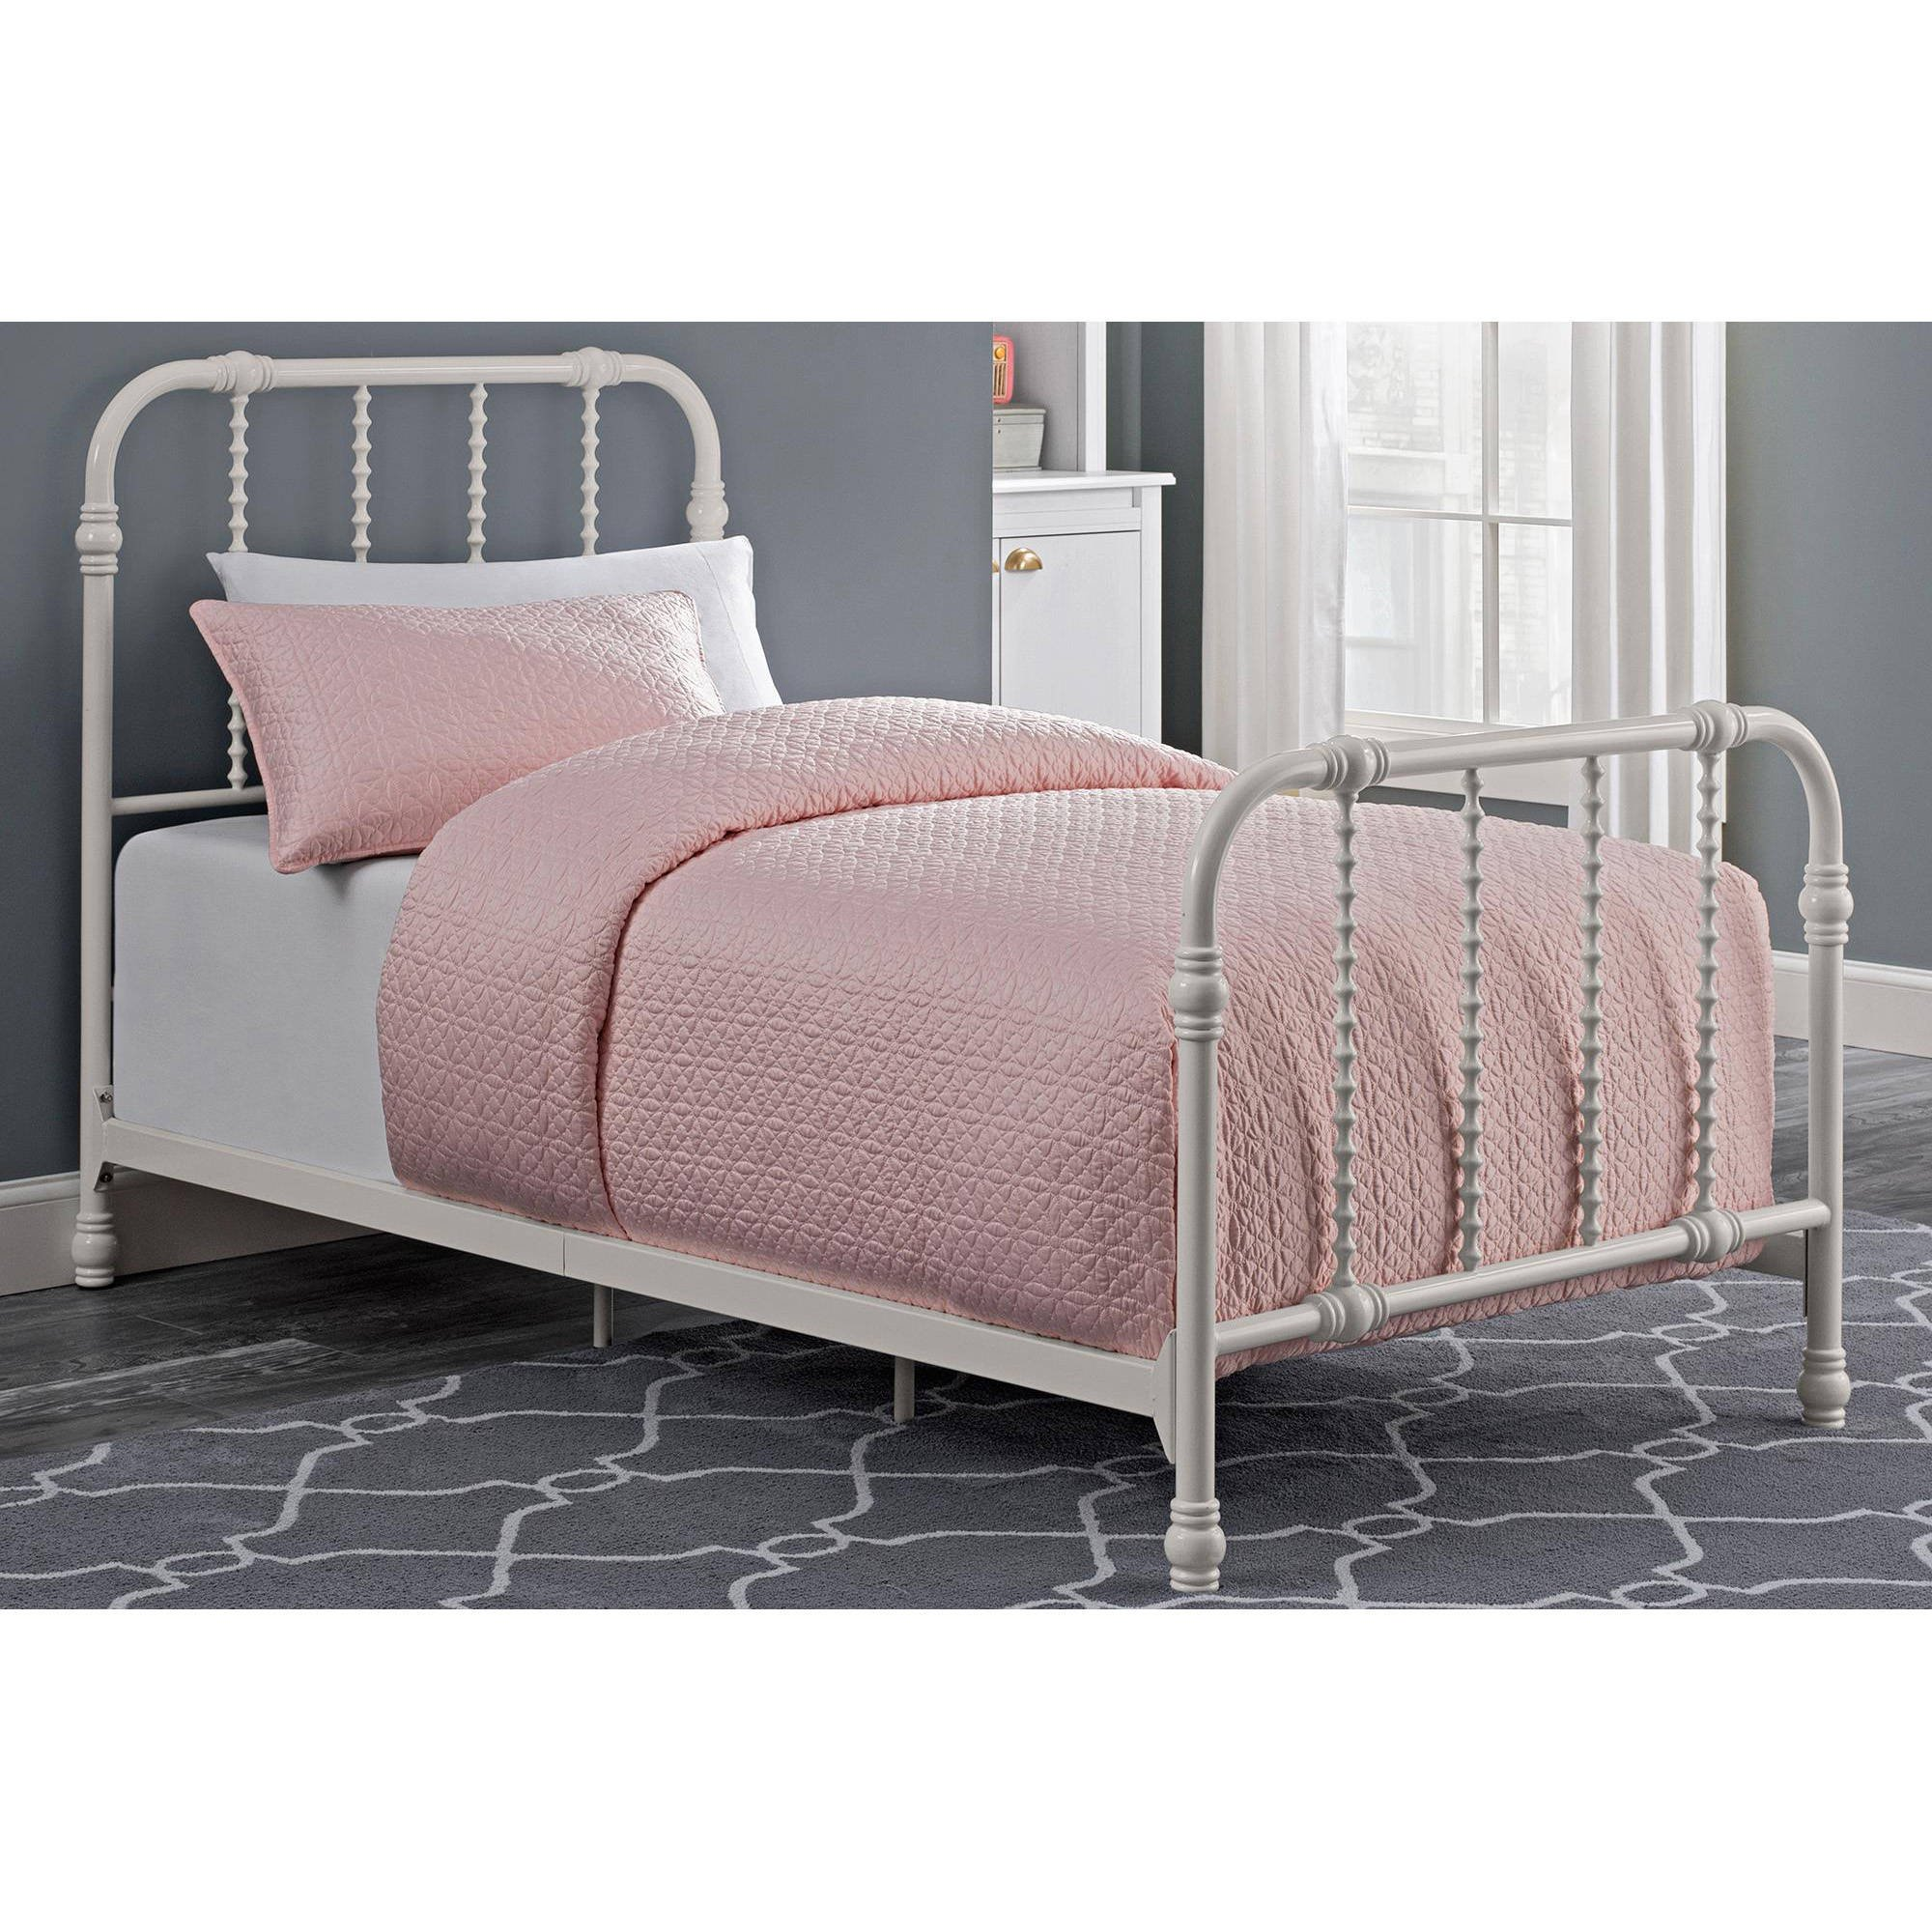 DHP Jenny Lind Metal Bed, White, Multiple Sizes And Colors ...